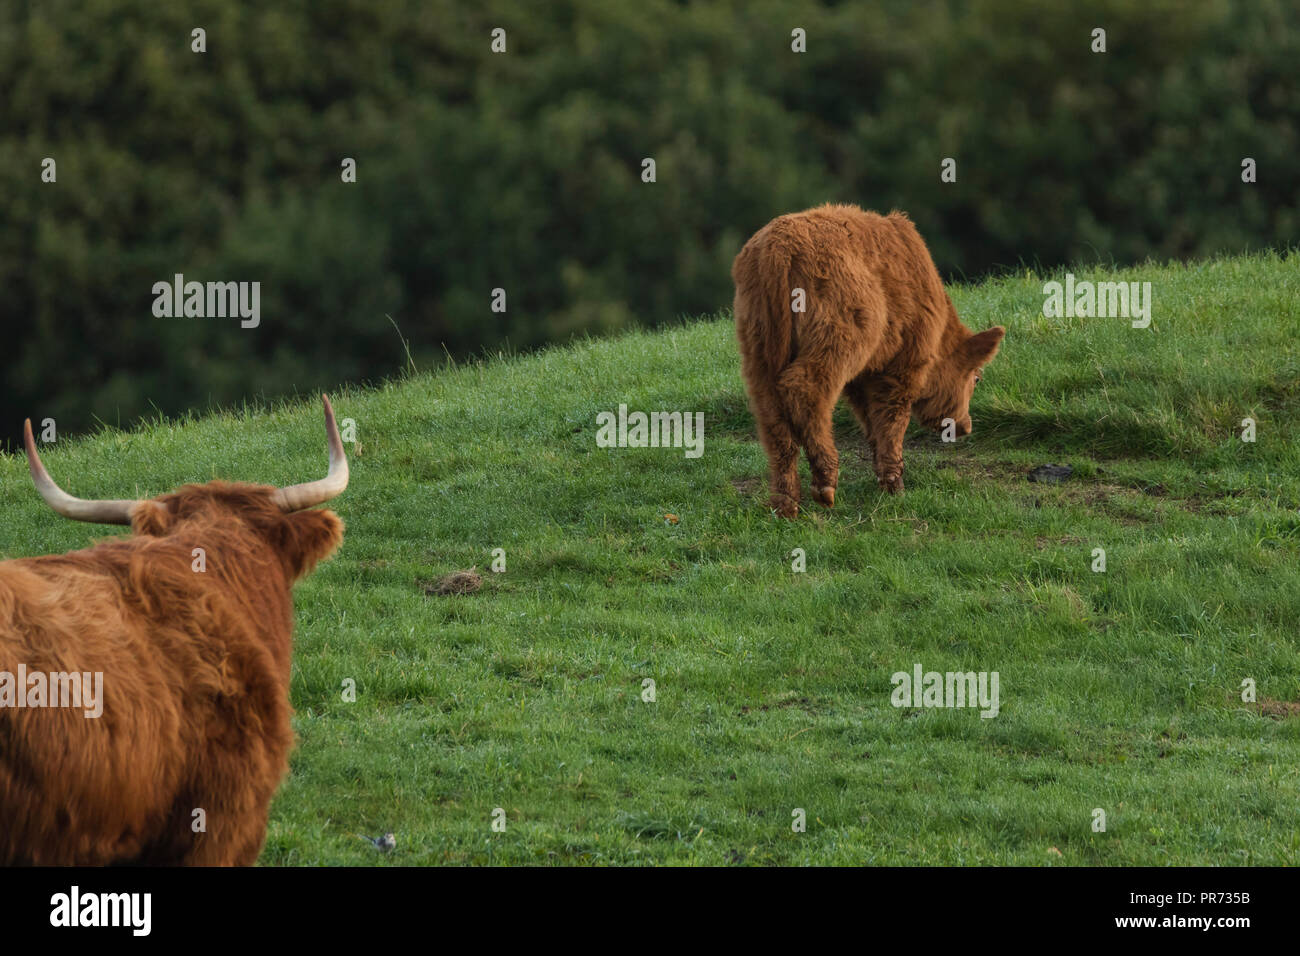 Scottish highland cows, bull looking at calf in field, Scotland UK - Stock Image